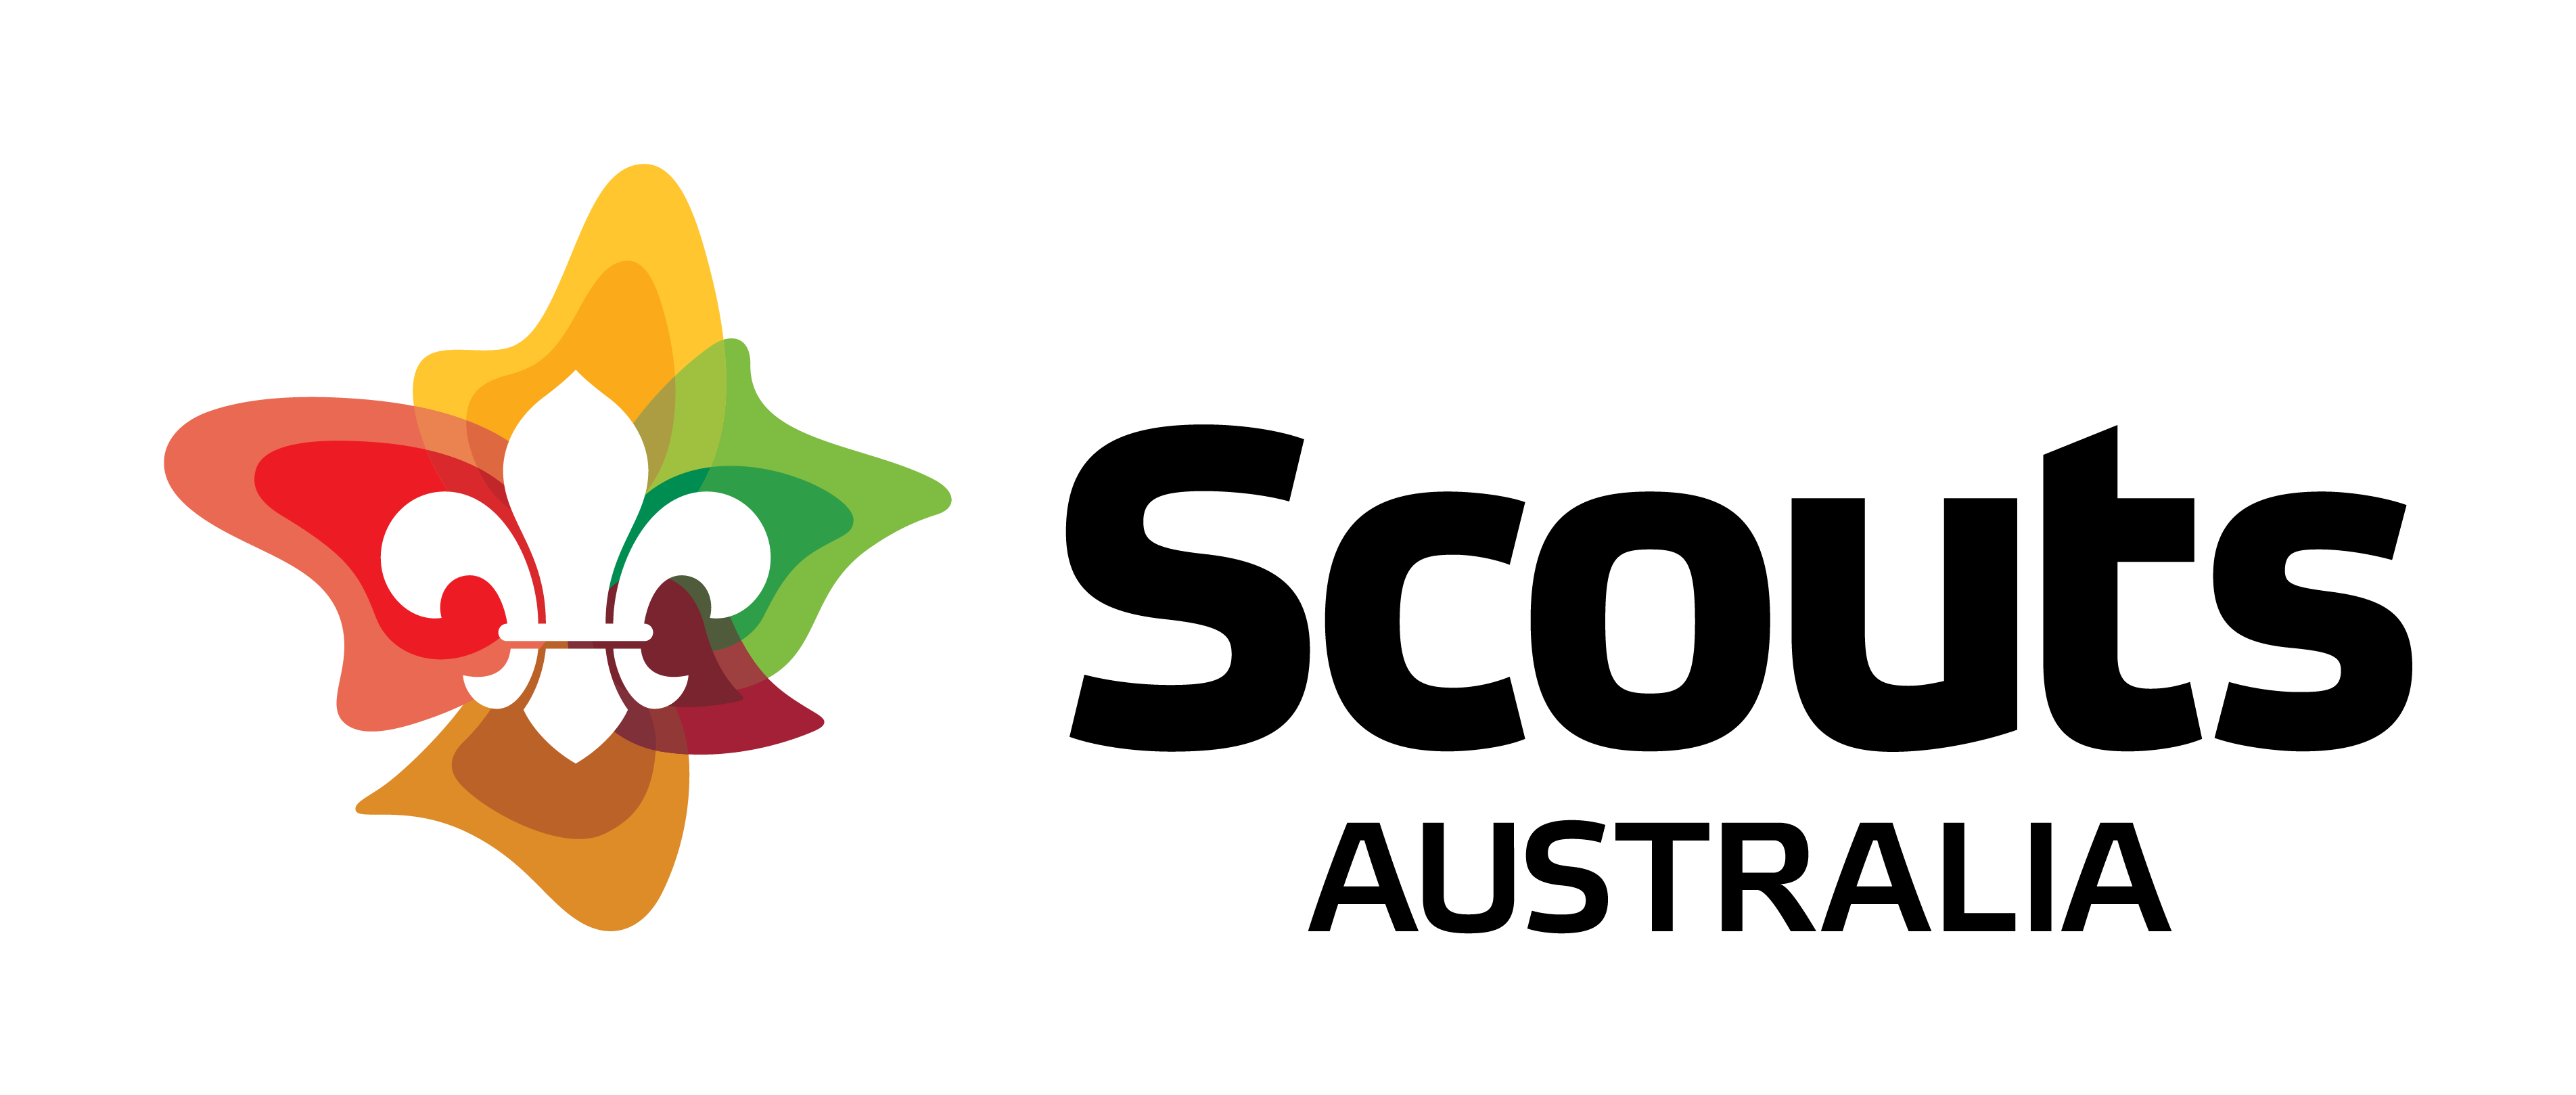 Scouts Australia: Be Prepared... for new adventure!